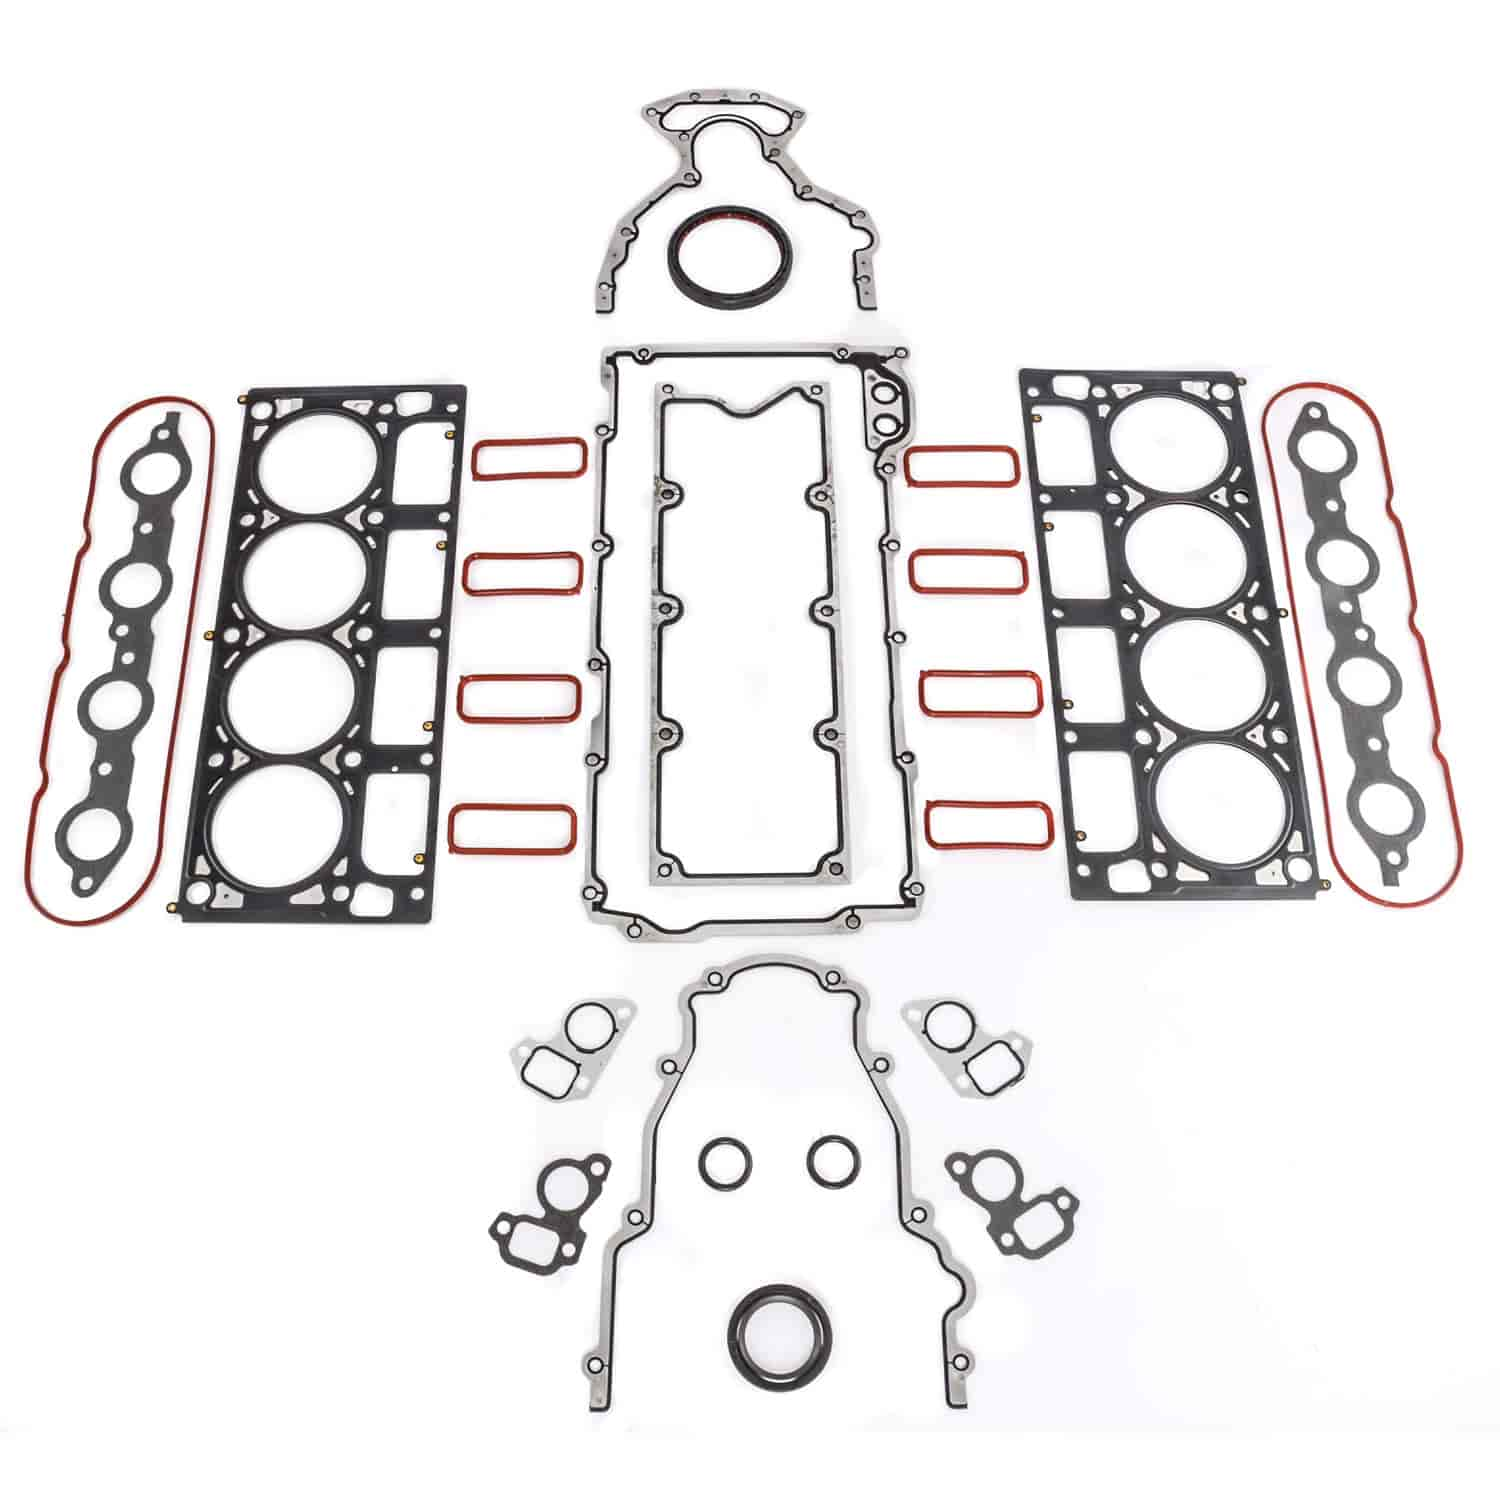 Ls6 Engine Code: JEGS 210840K1: Gasket Kit Upper And Lower For GM LS1, LS2